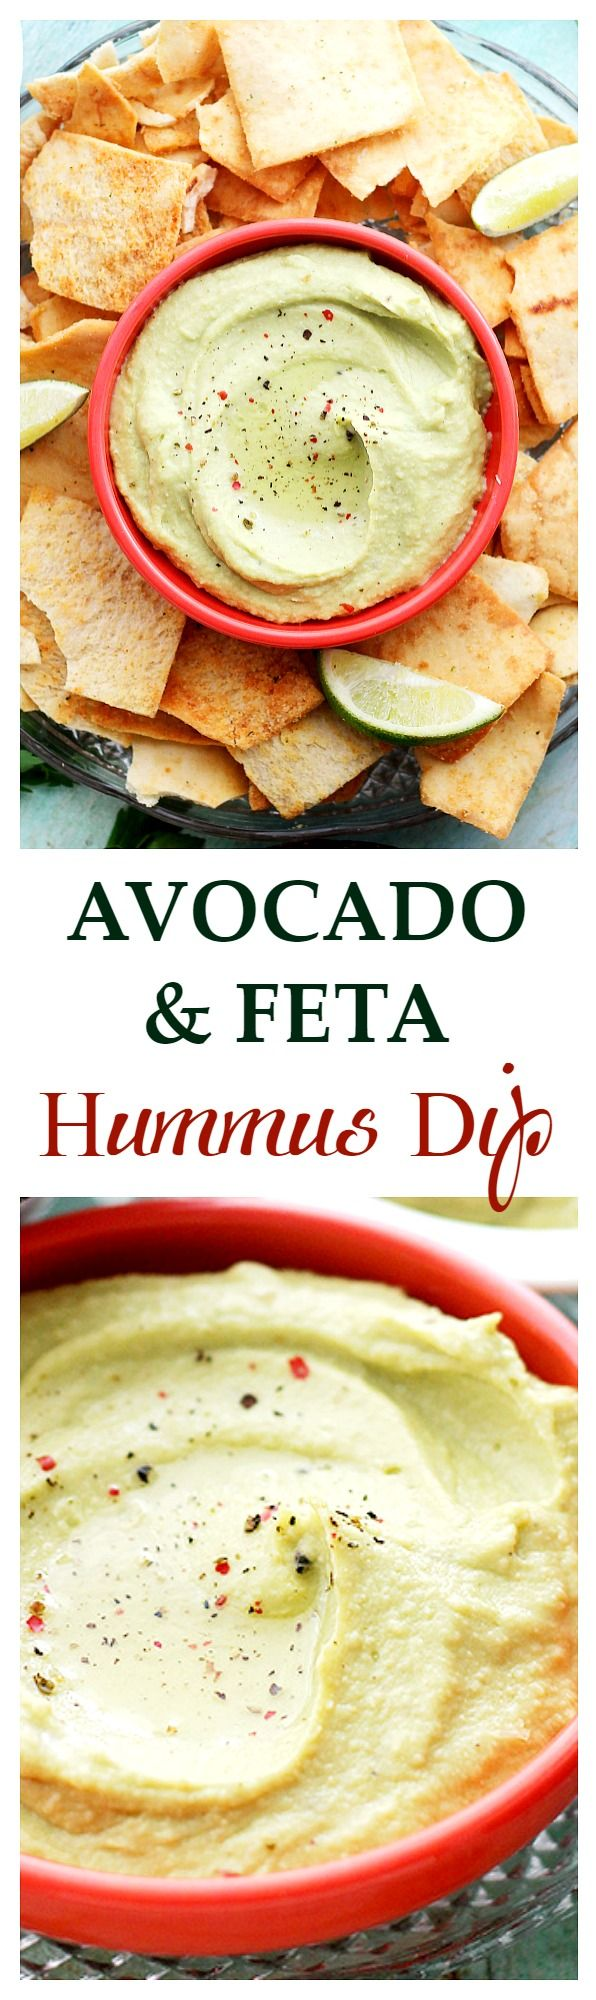 25+ best ideas about Hummus dip on Pinterest | Humus ...